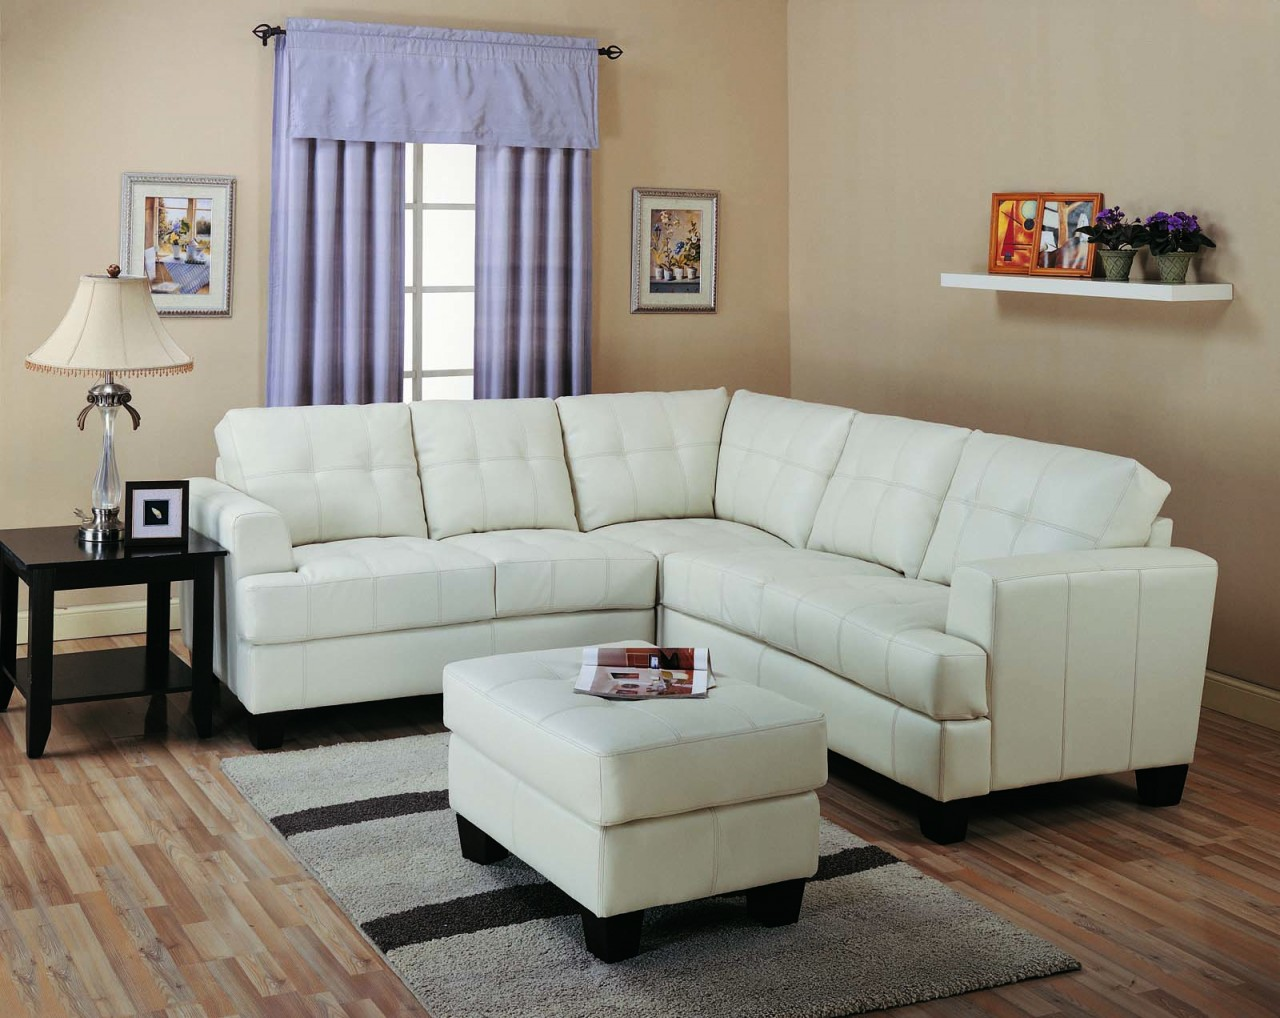 Types of best small sectional couches for small living for Sofa for small space living room